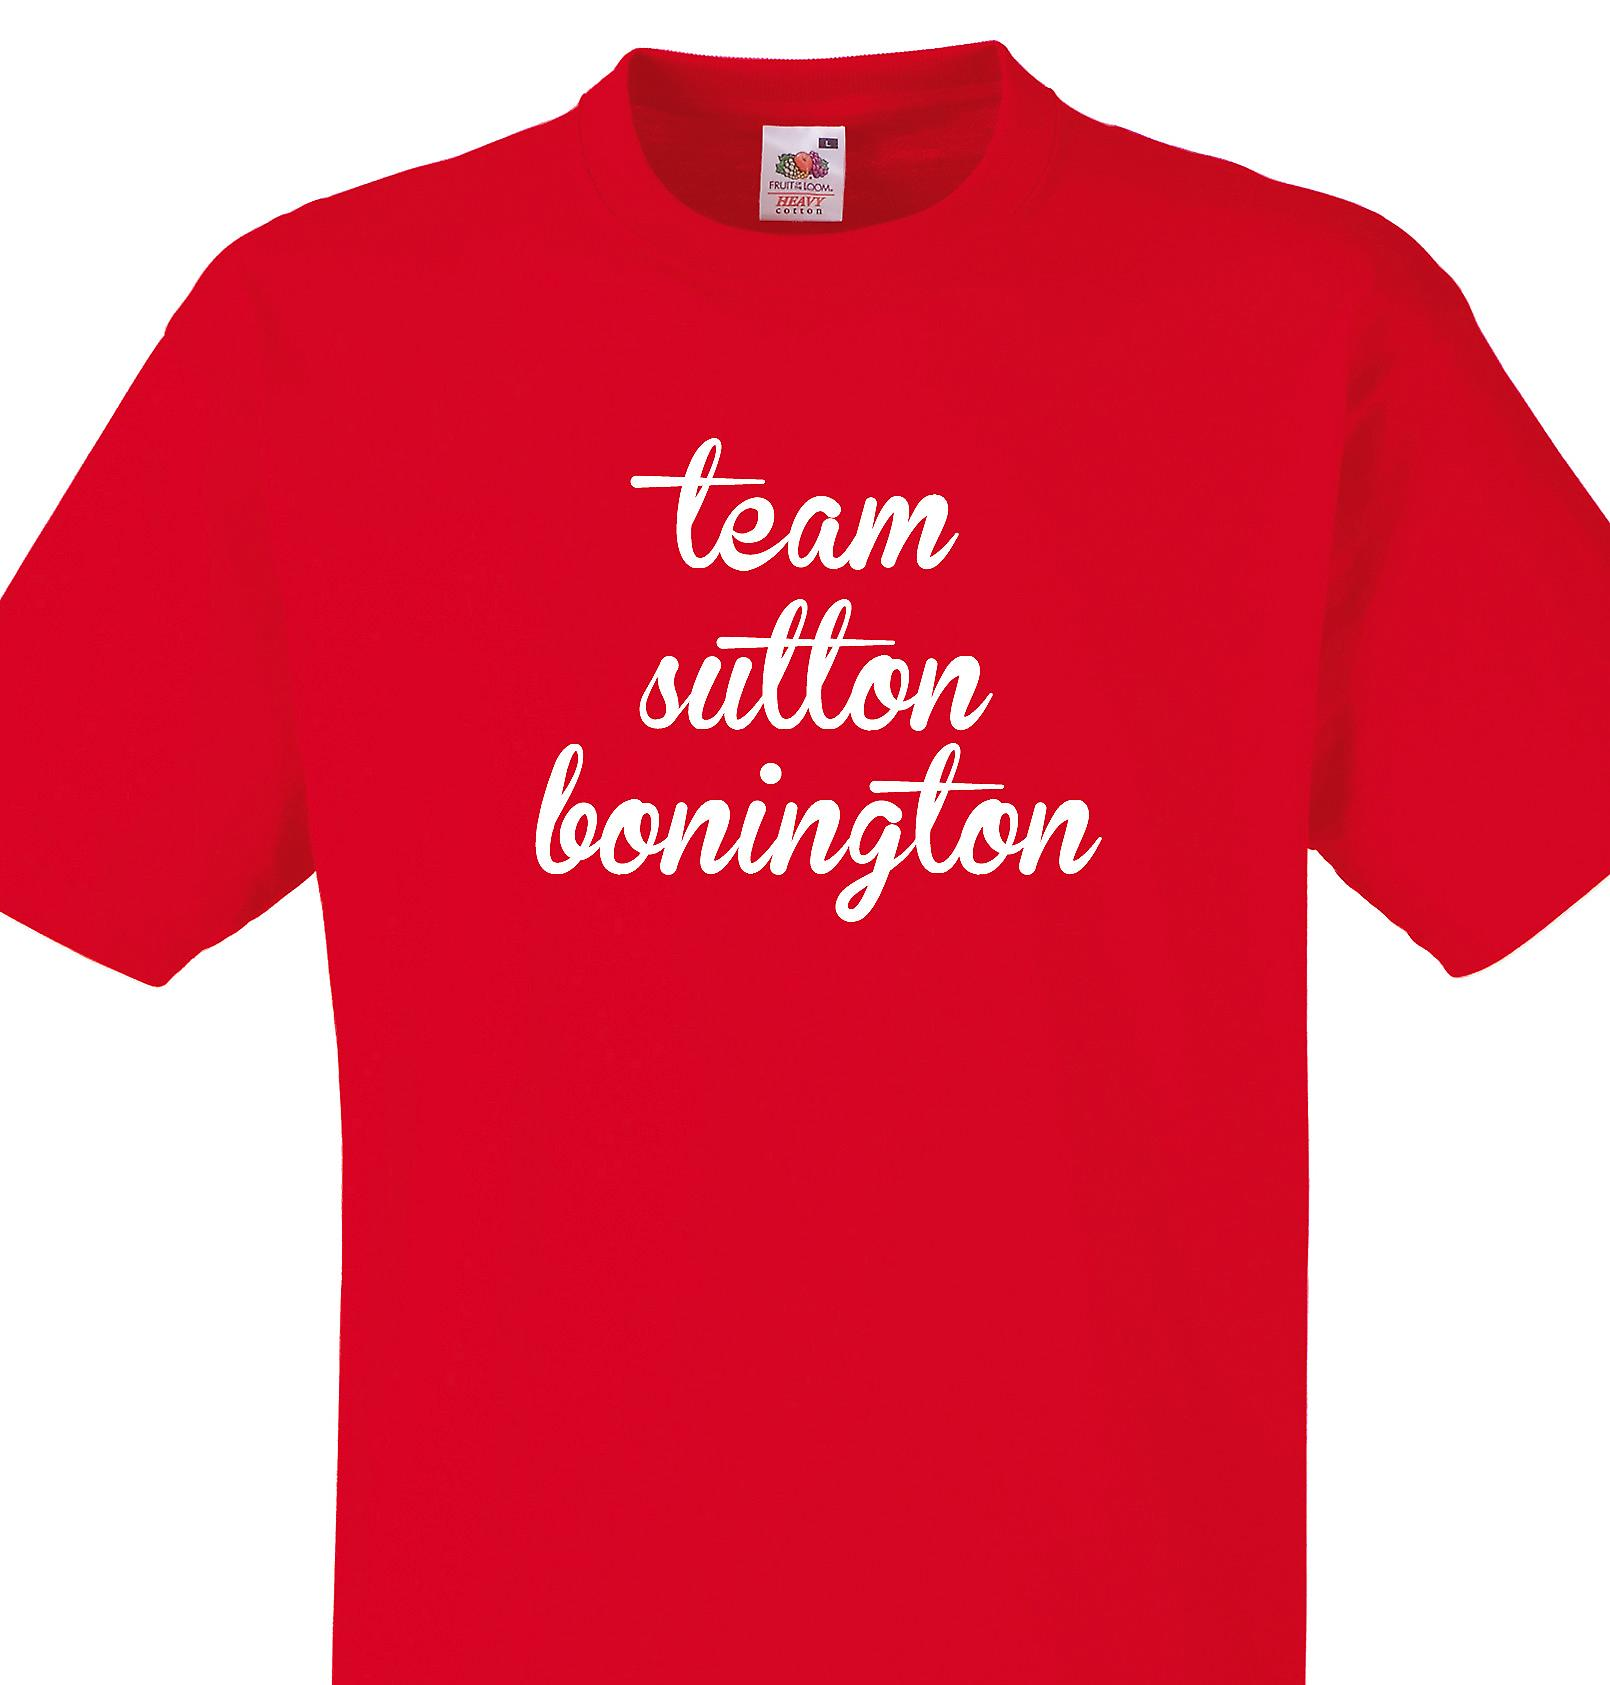 Team Sutton bonington Red T shirt